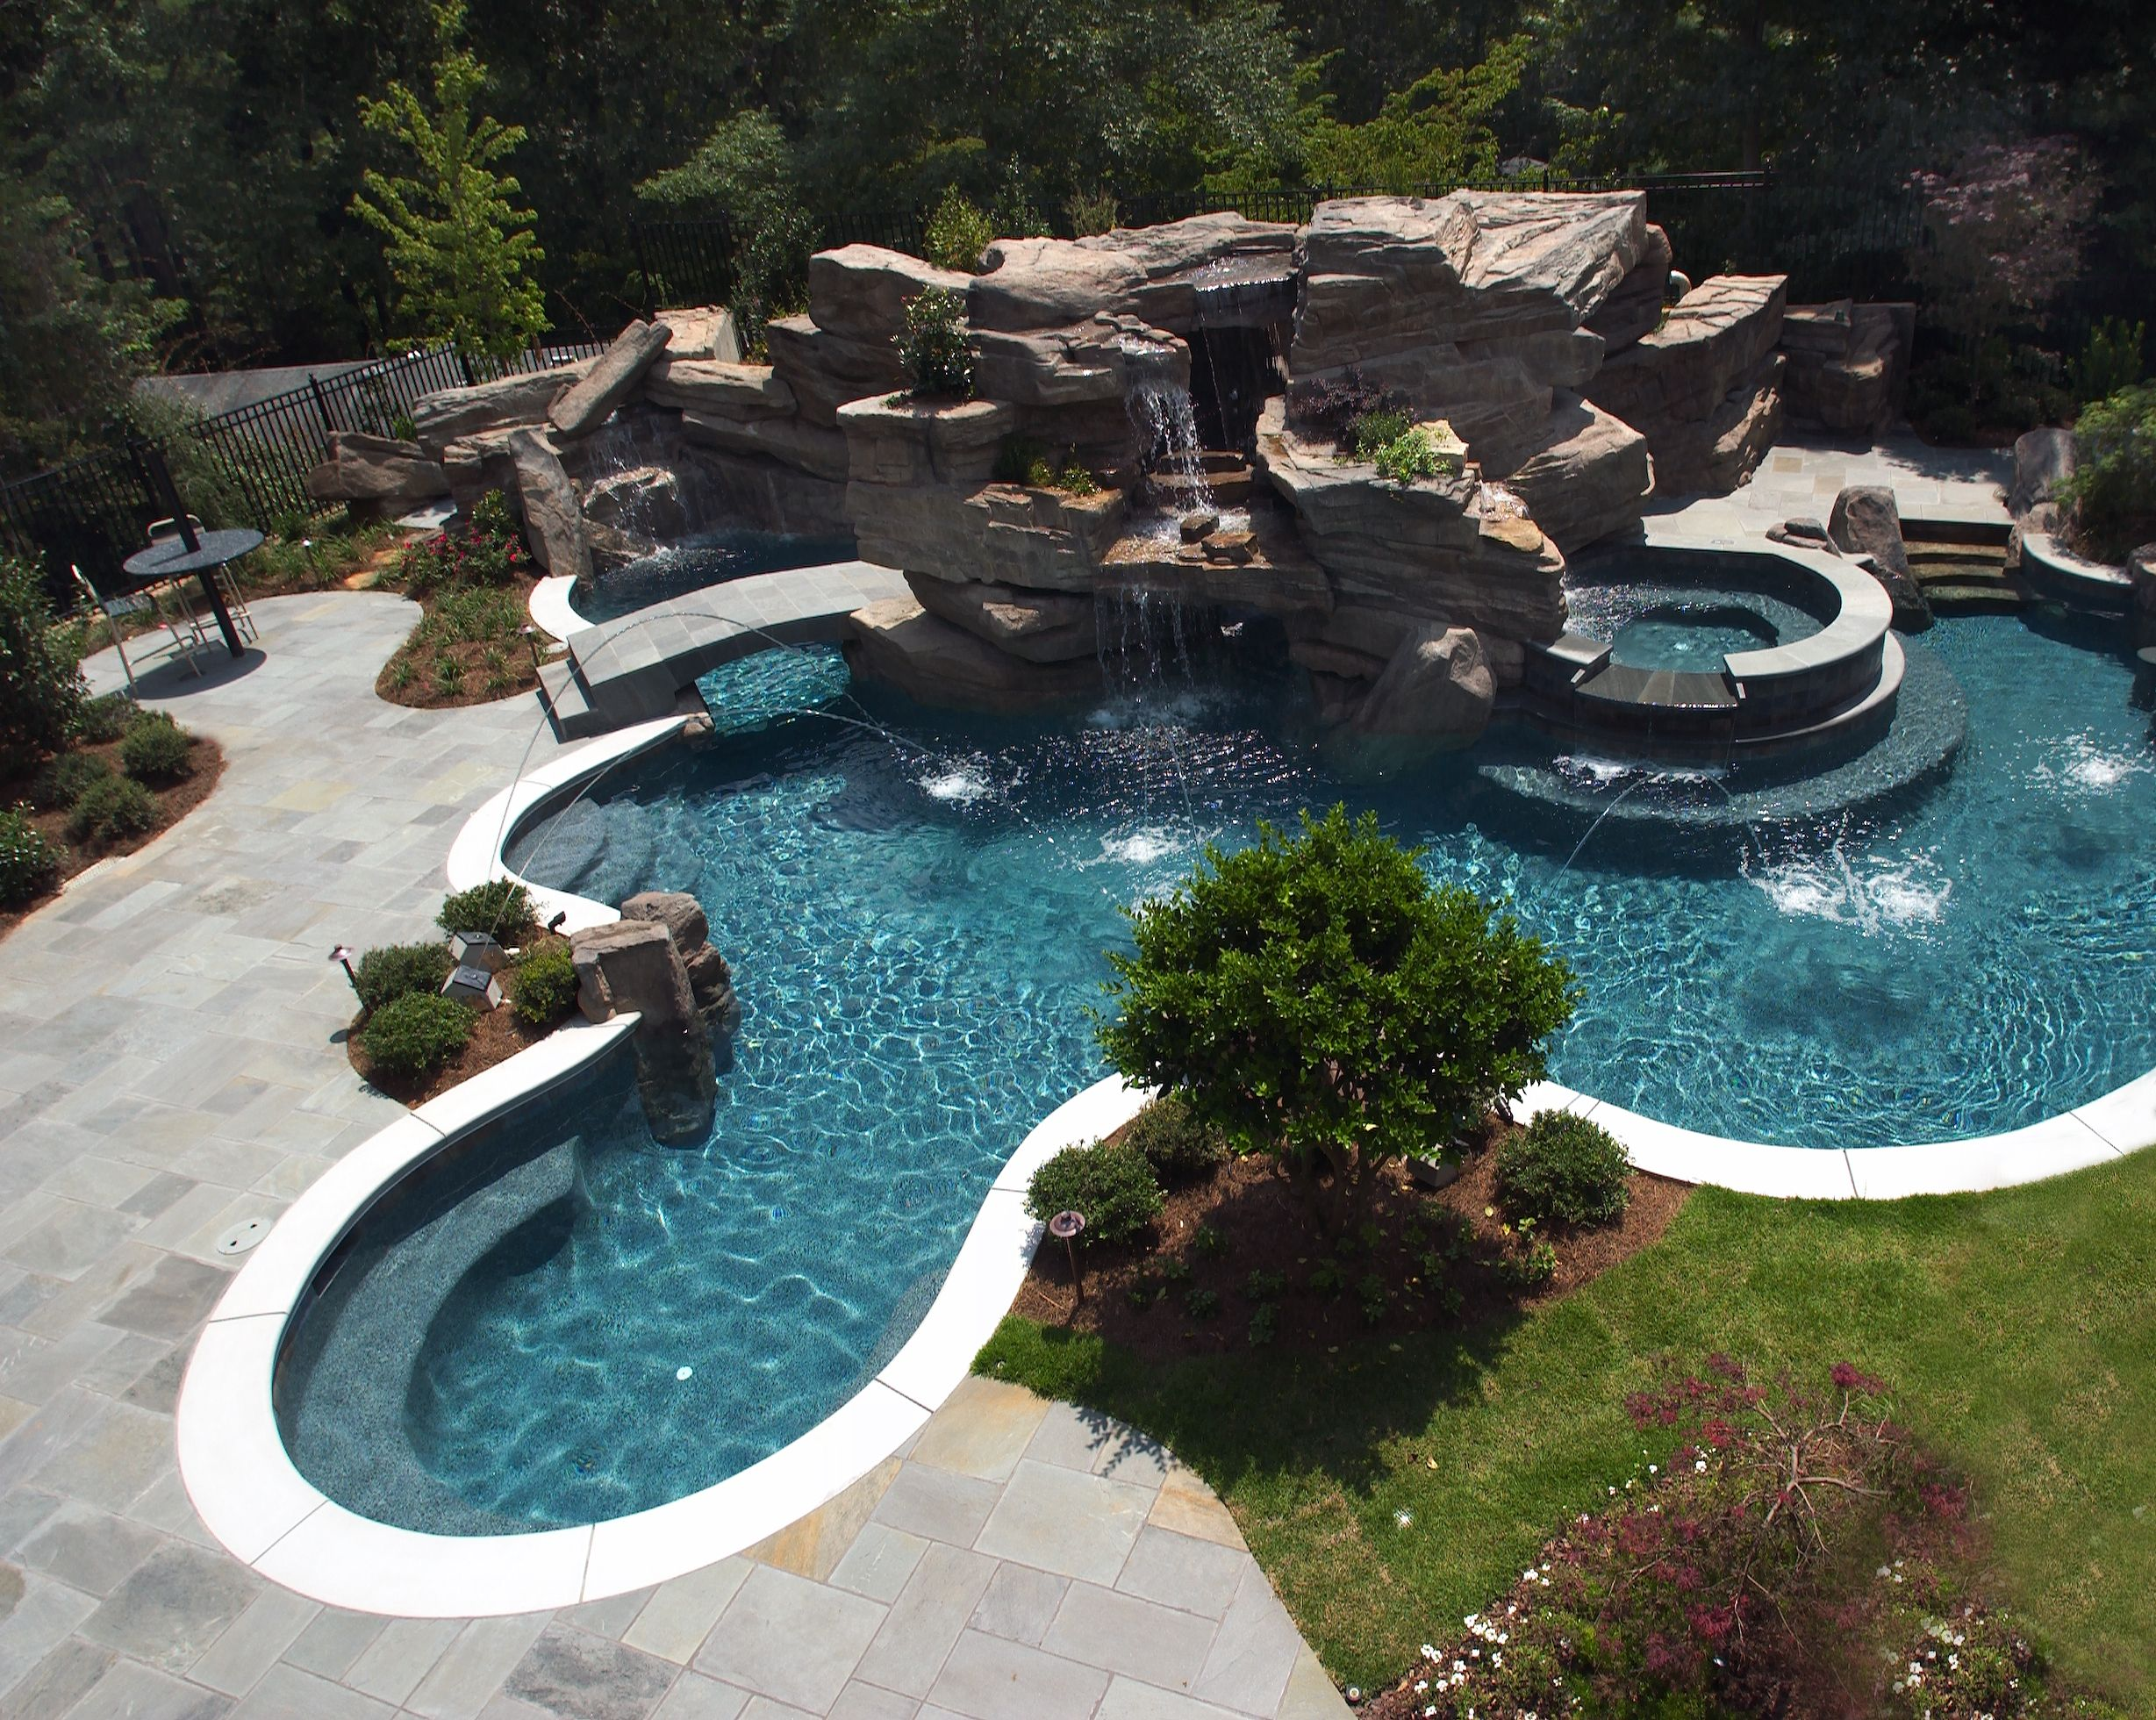 Elaborate swimming pool featuring large grotto waterfall for Poolside ideas